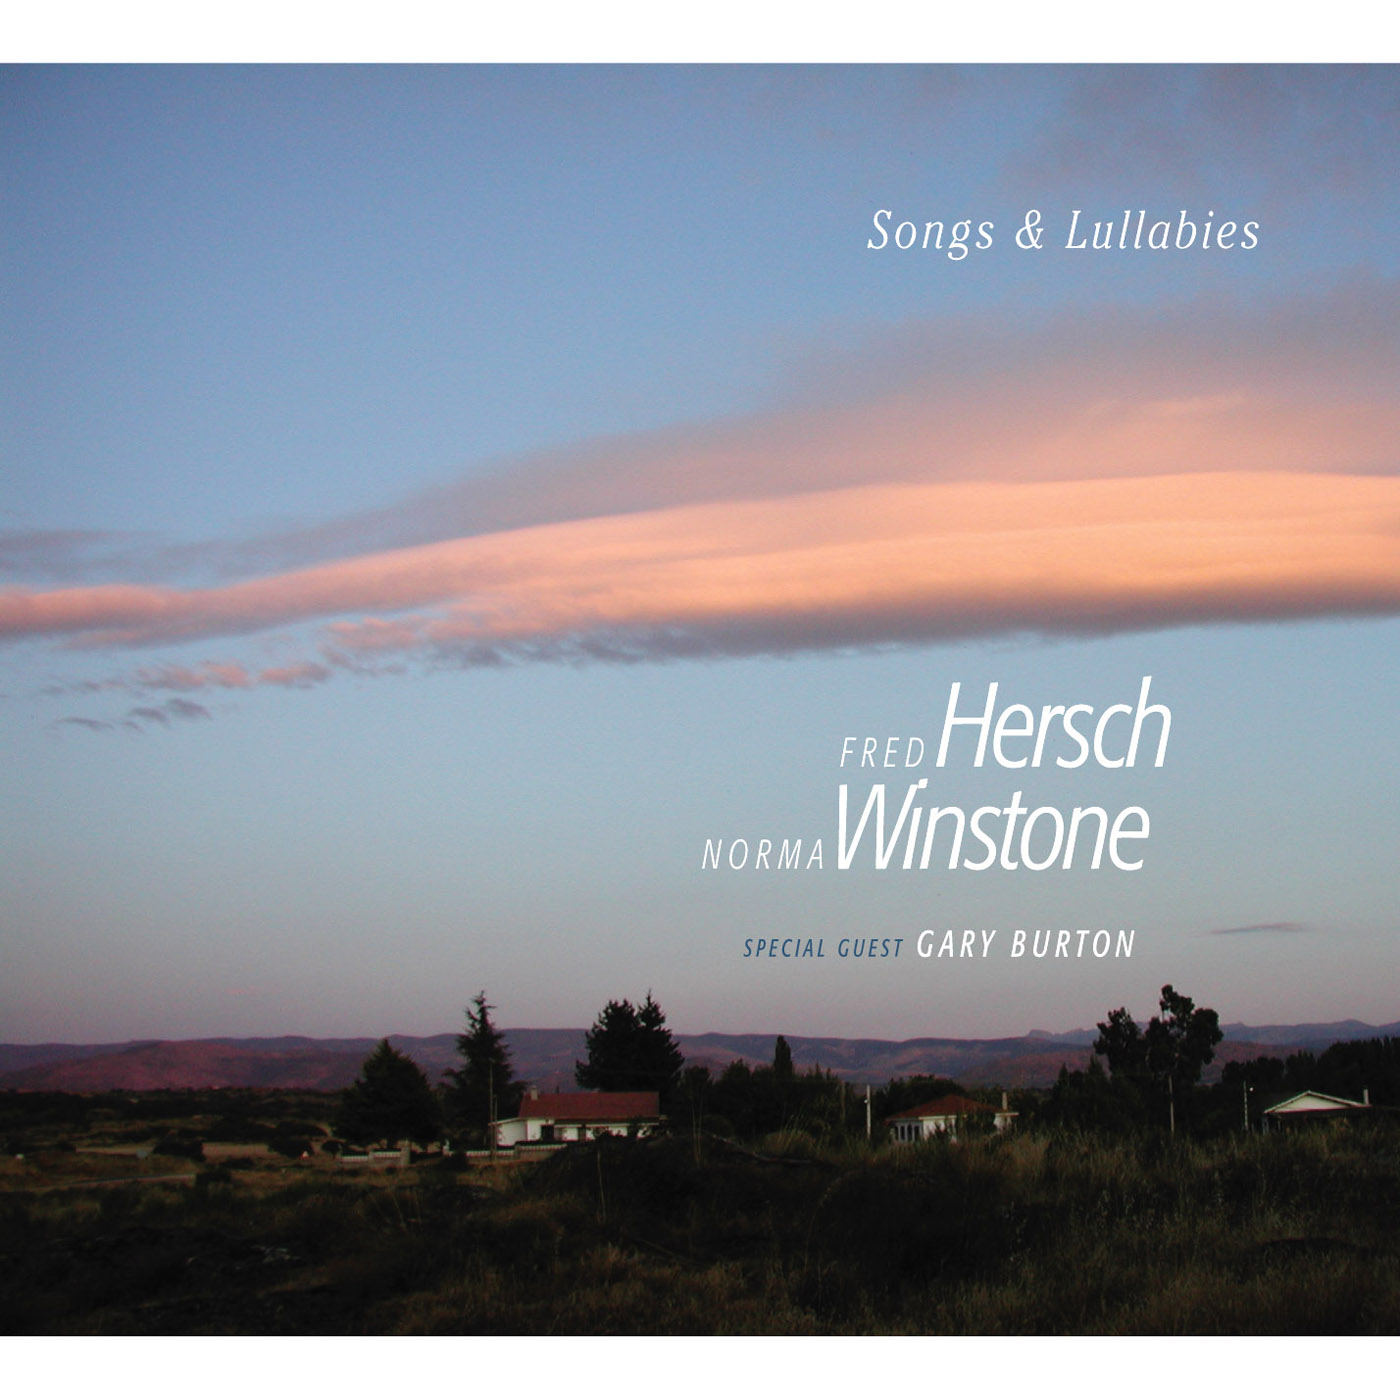 Songs & Lullabies by Fred Hersch & Norma Winstone cover